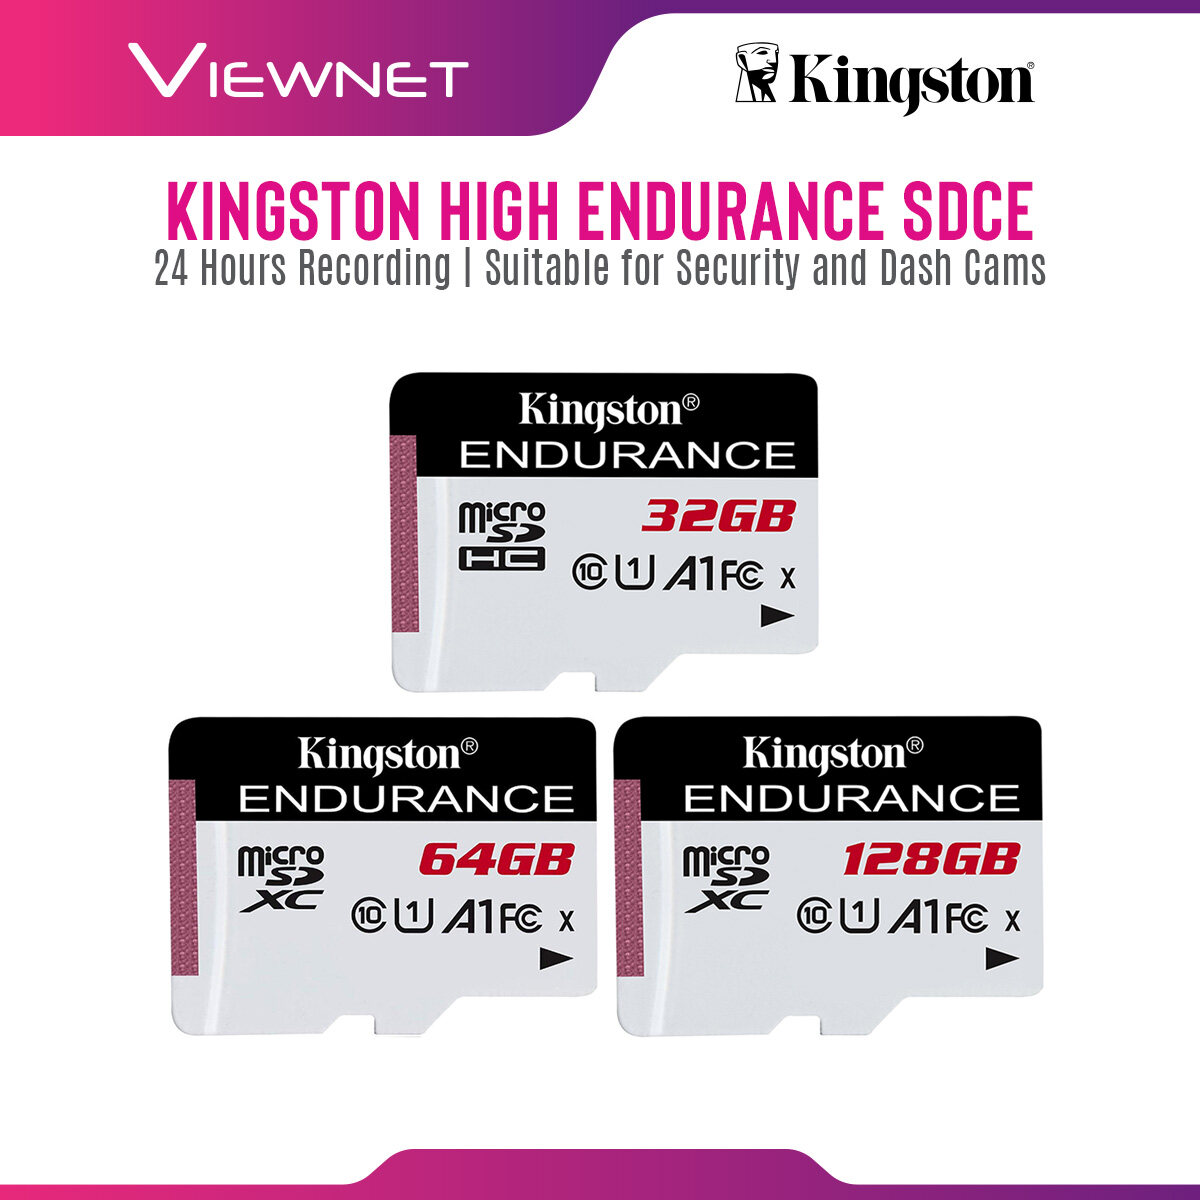 Kingston High Endurance Micro SD Memory Card SDCE Series (32GB / 64GB / 128GB) with Class10, USH-1, 95MB/s Read and 45MB/s Write, 24/7 Reliable Recording, High-Performance, Seamless Recording, Durable in Harsh Conditions